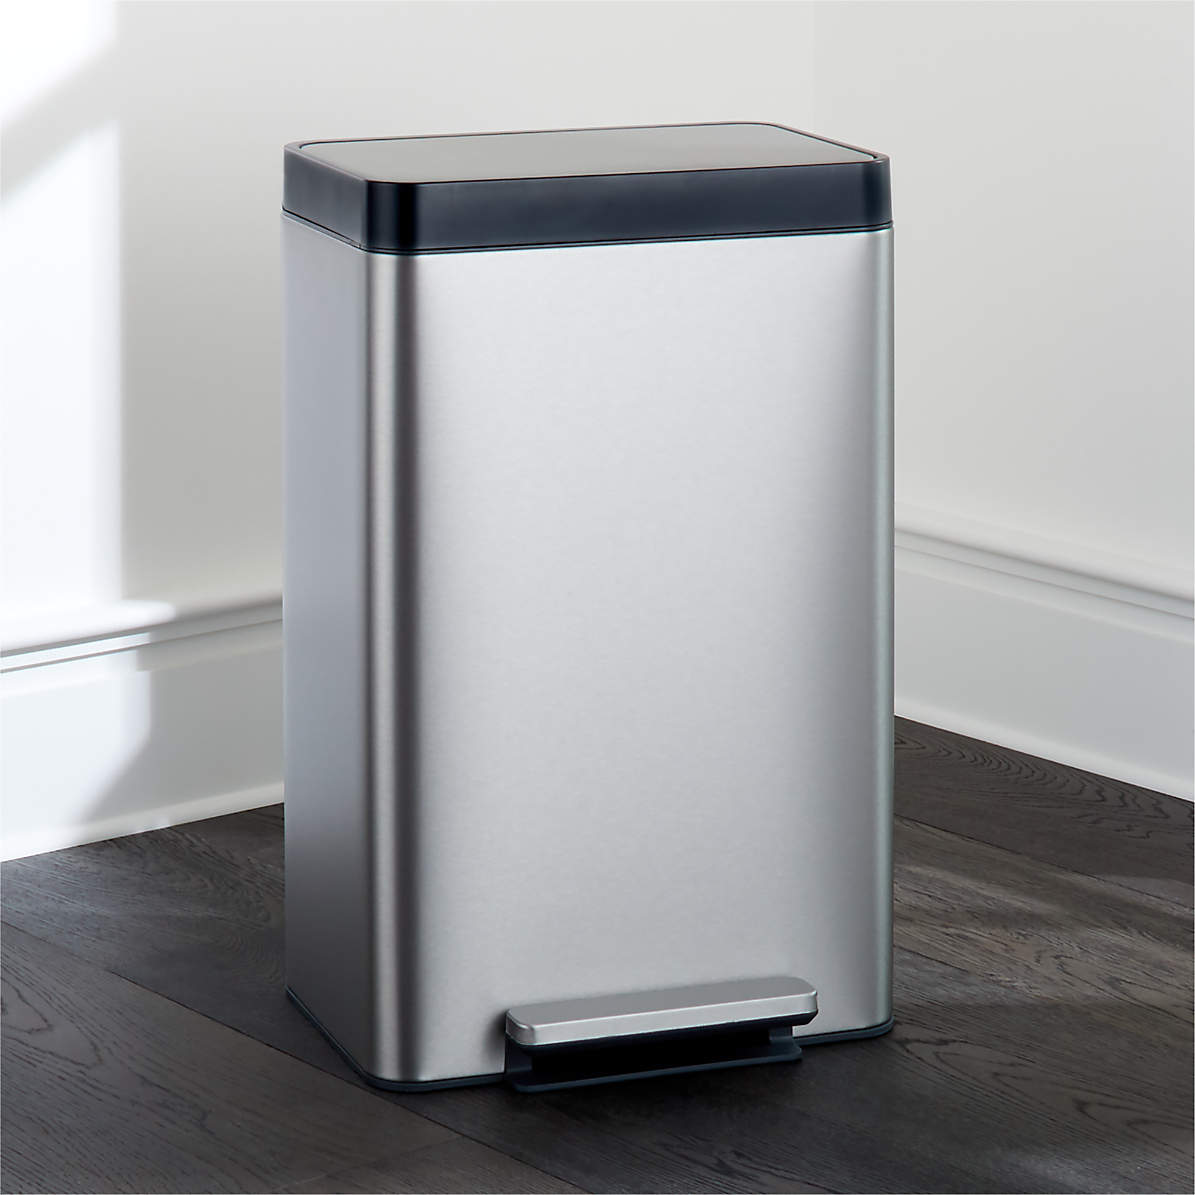 Kohler Dual Compartment Stainless Steel Step Trash Can Reviews Crate And Barrel Canada